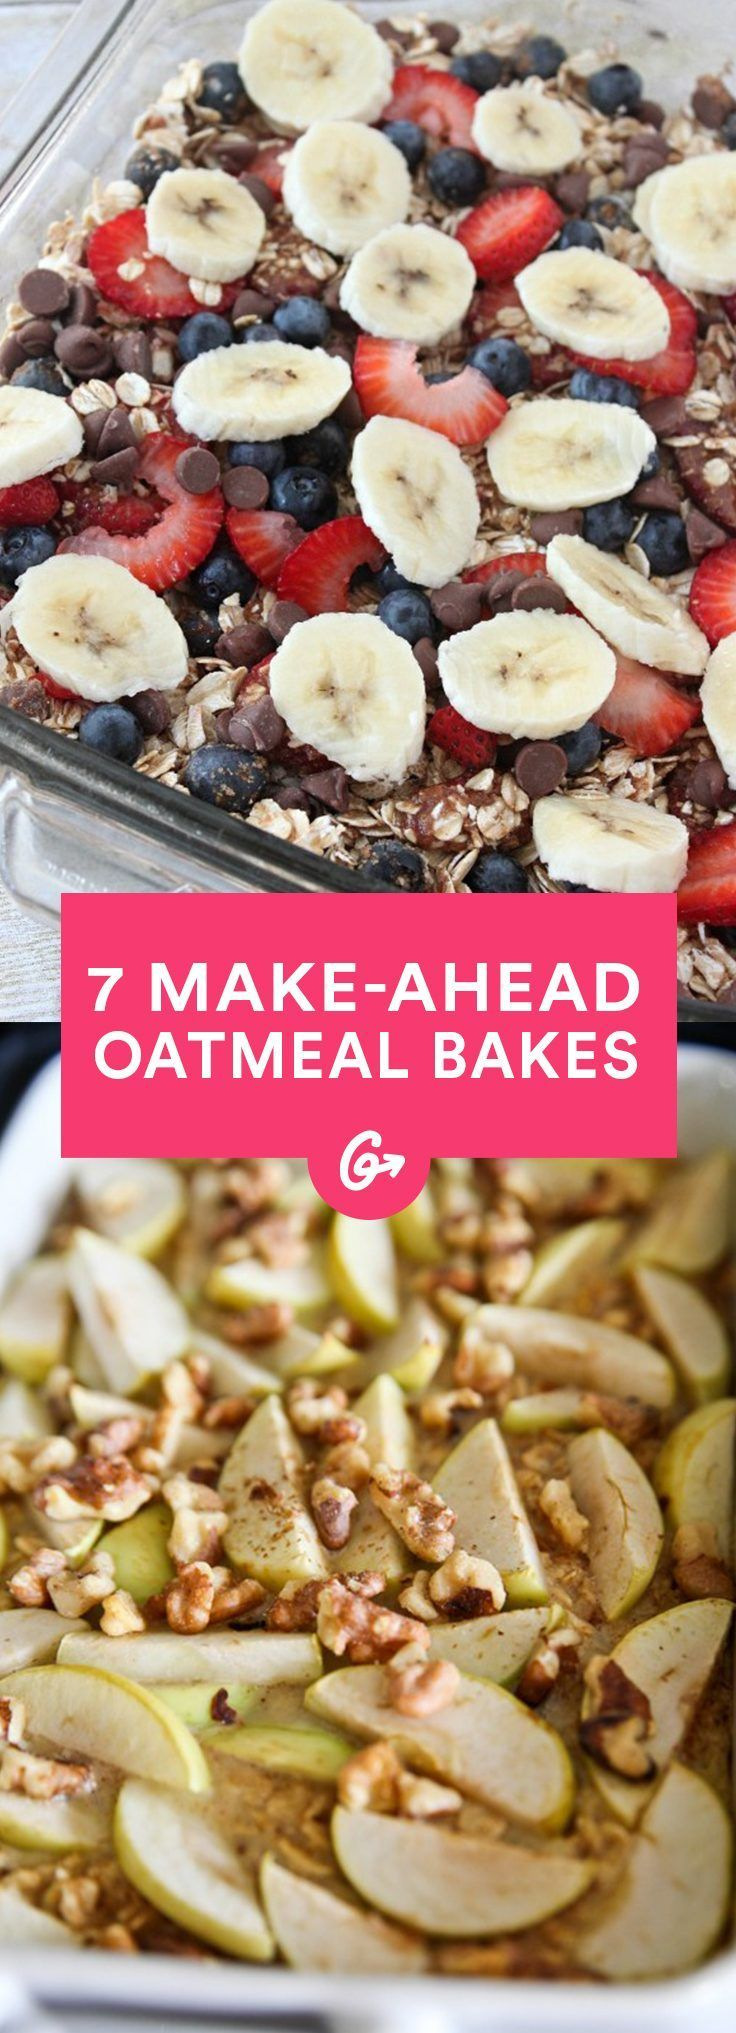 Whip up any one of these, and you've got breakfast covered for the week.  #baked #breakfast #casserole http://greatist.com/eat/make-ahead-oatmeal-bakes